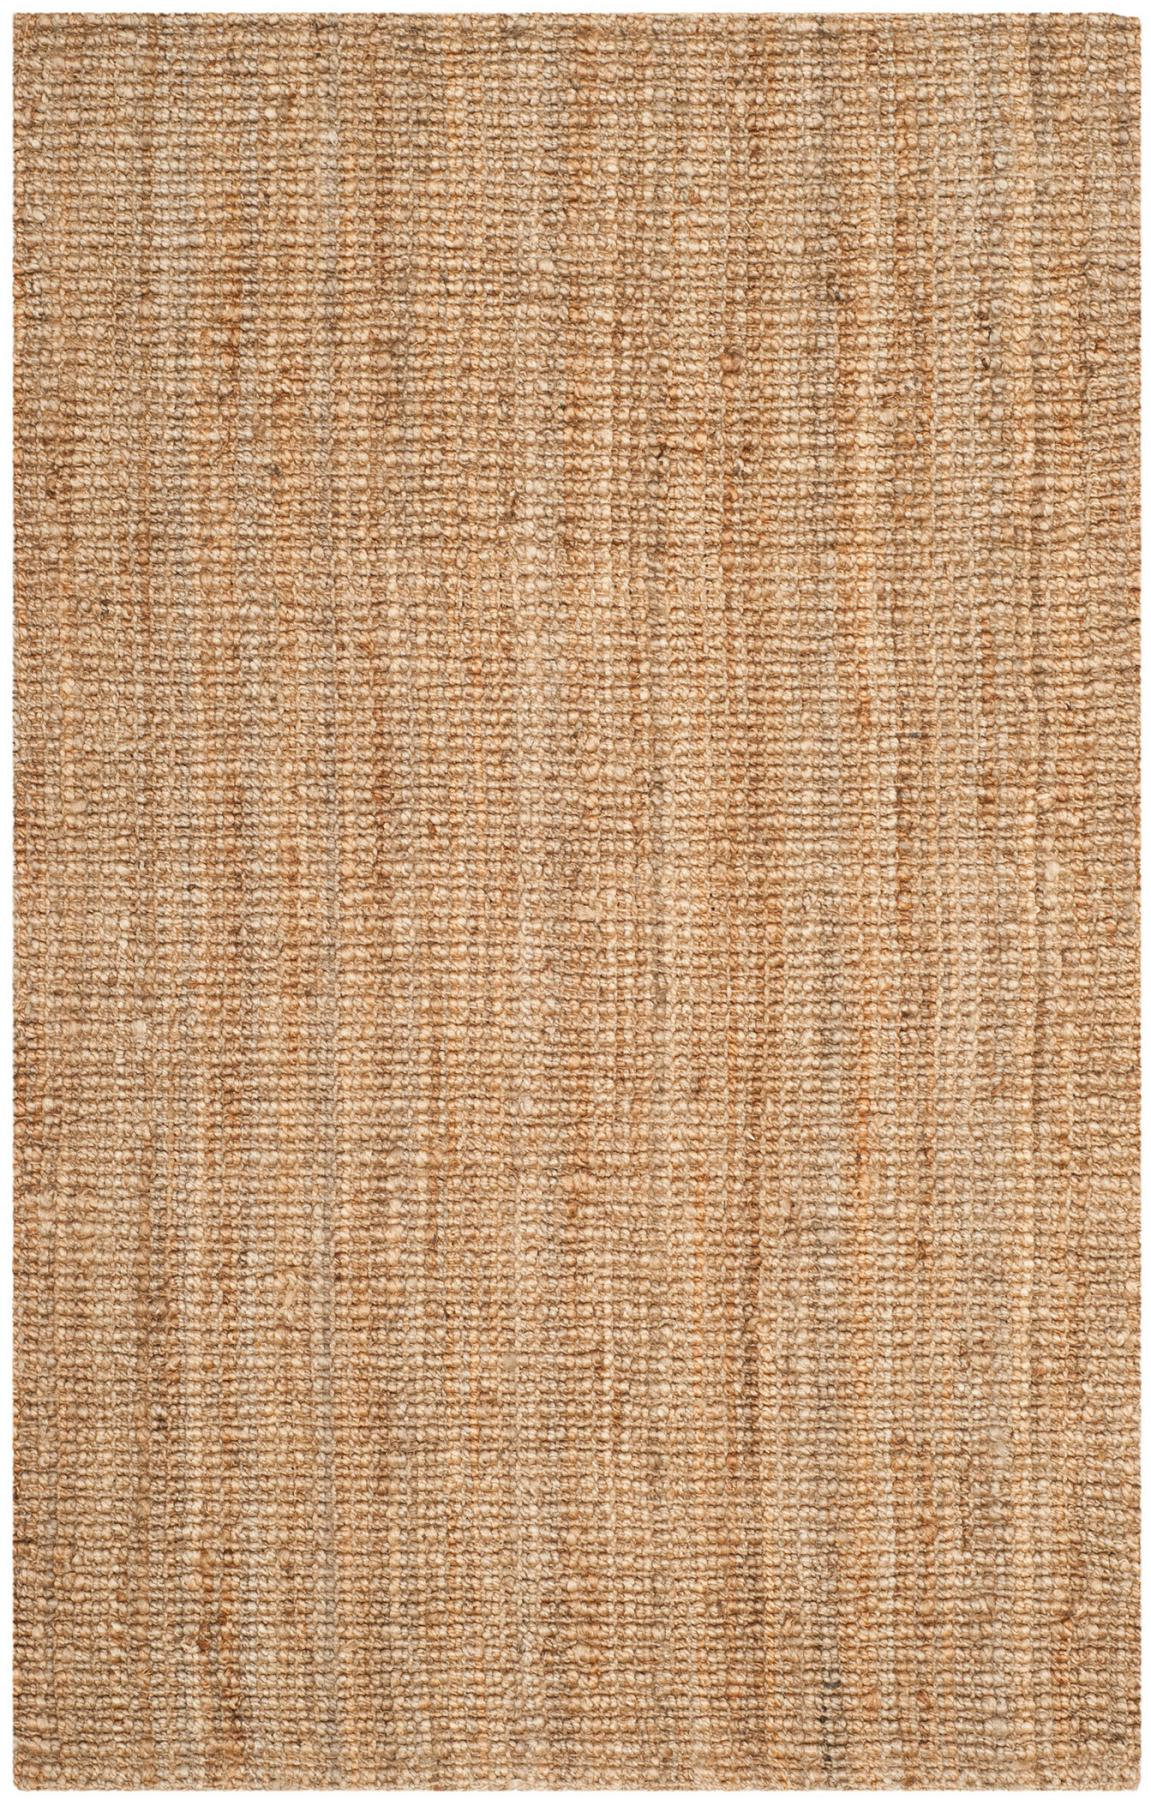 floor ballard decoration design bamboo awesome designs soft cool with living natural for flooring room area decor jute ideas rugs rug and fiberwor beautiful fiber